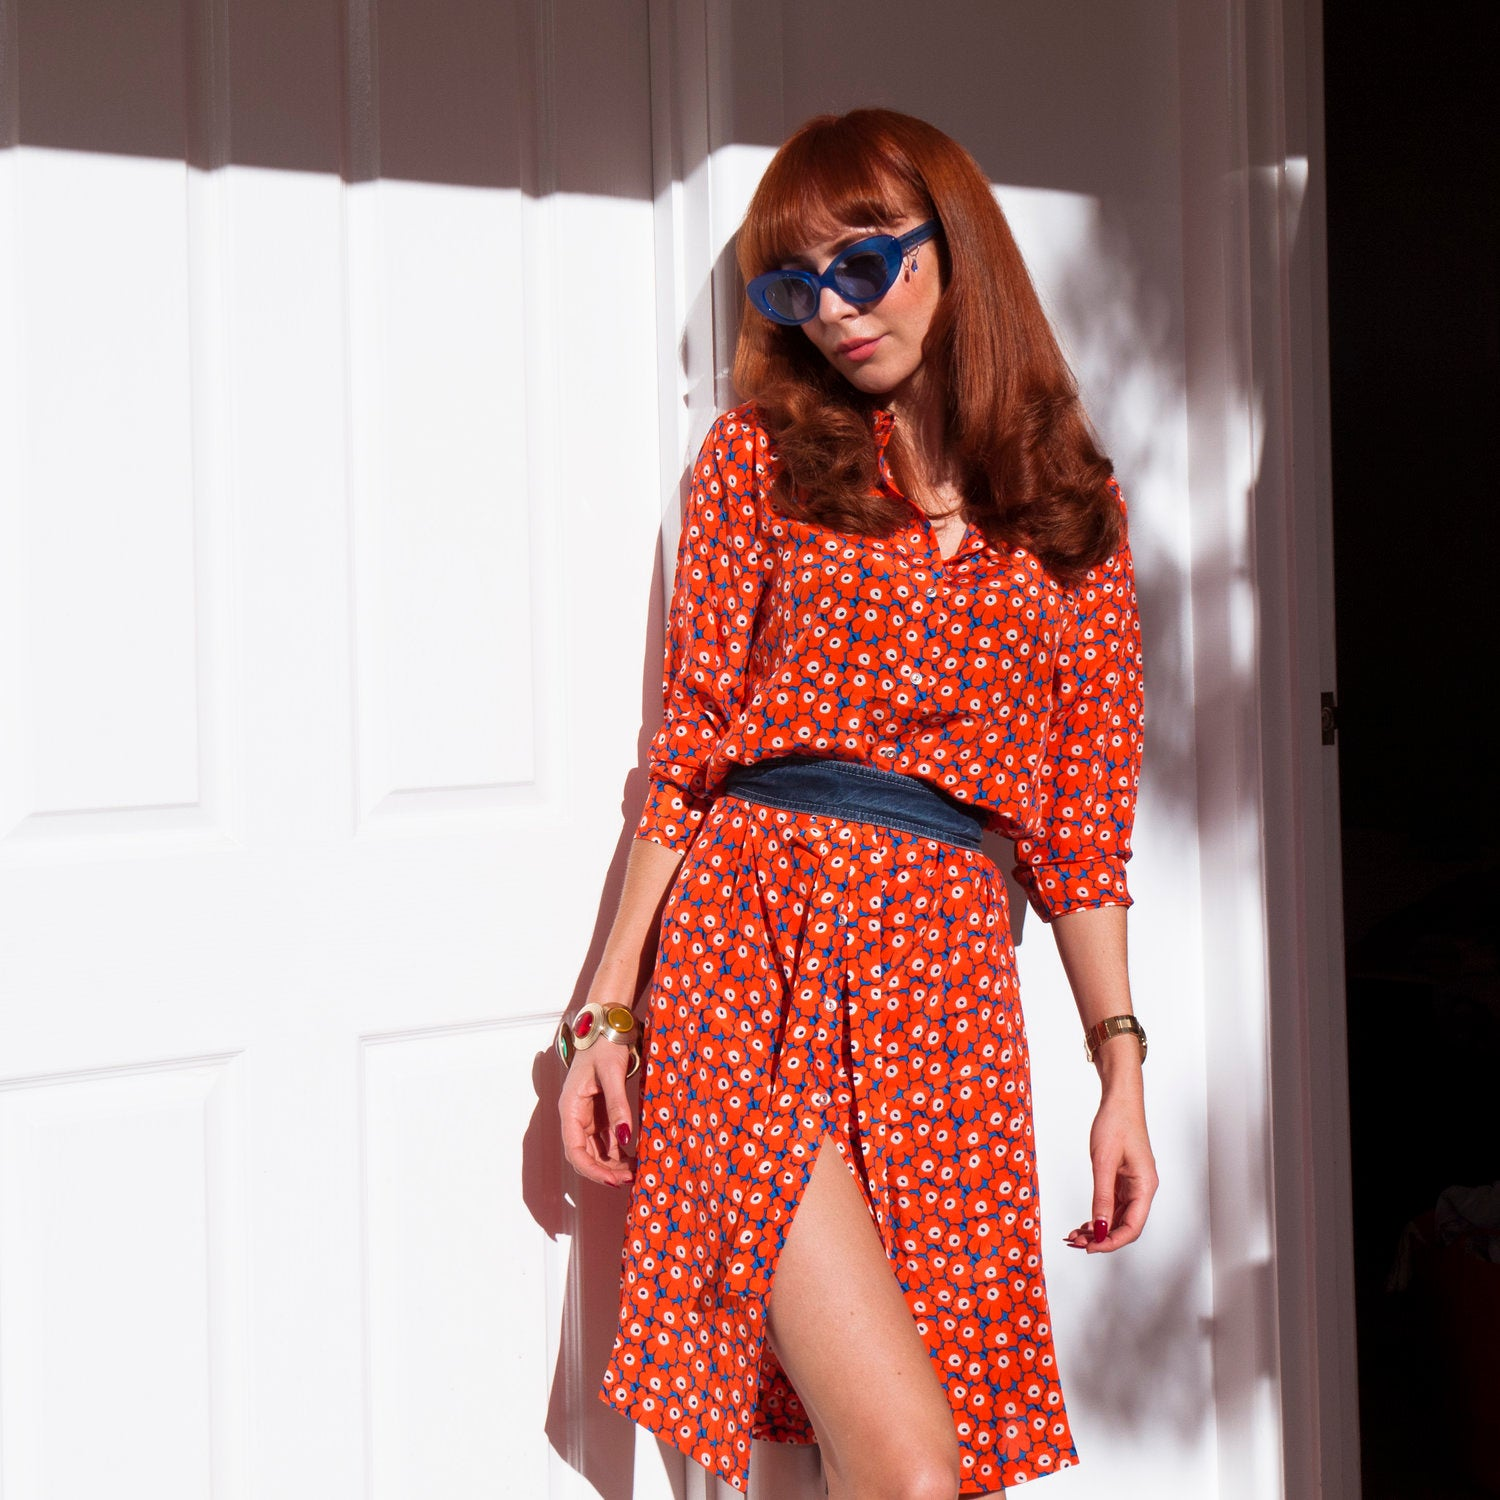 Red head illustrator Kelly Thompson wearing Marimekko